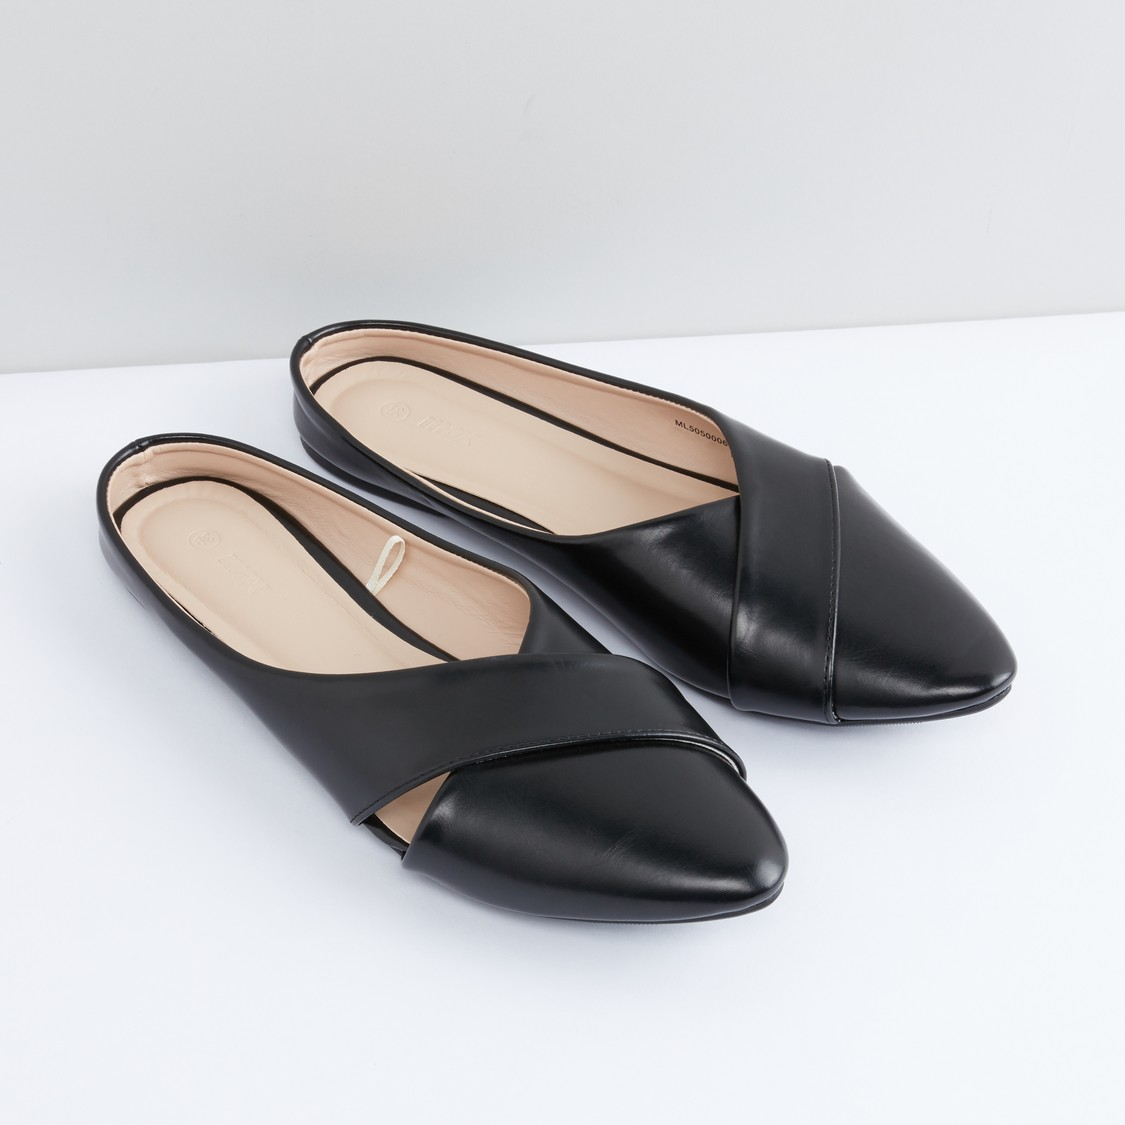 Shoes with Cutout Detail